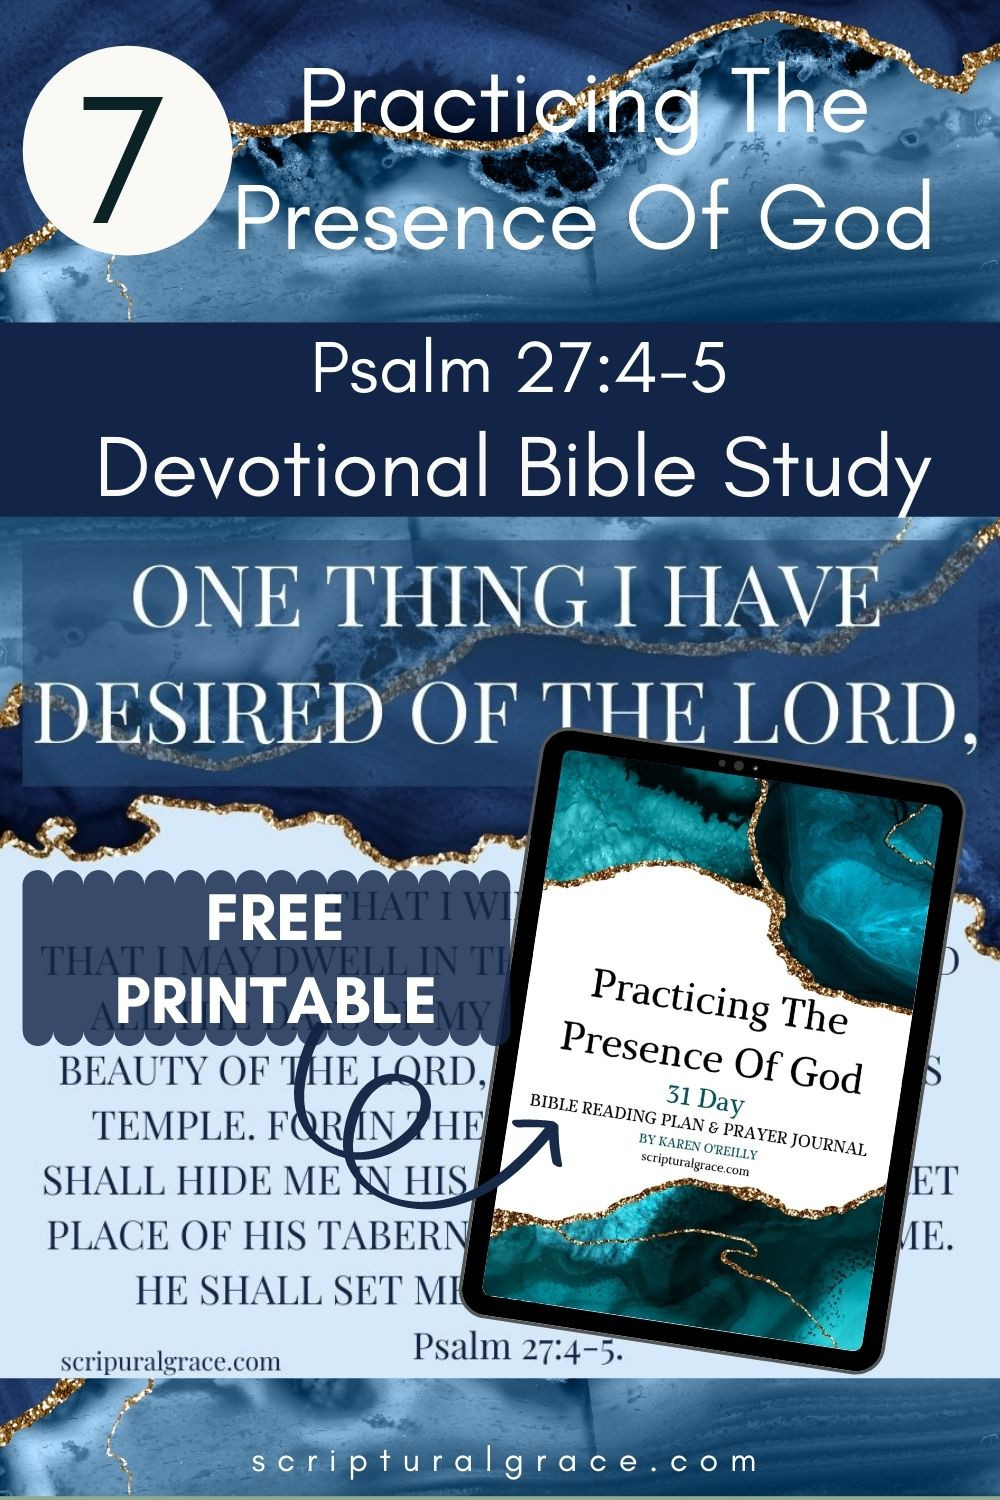 One thing I ask Psalm 27 4-5 free printable journal and 31 bible verses practicing the presence of God.